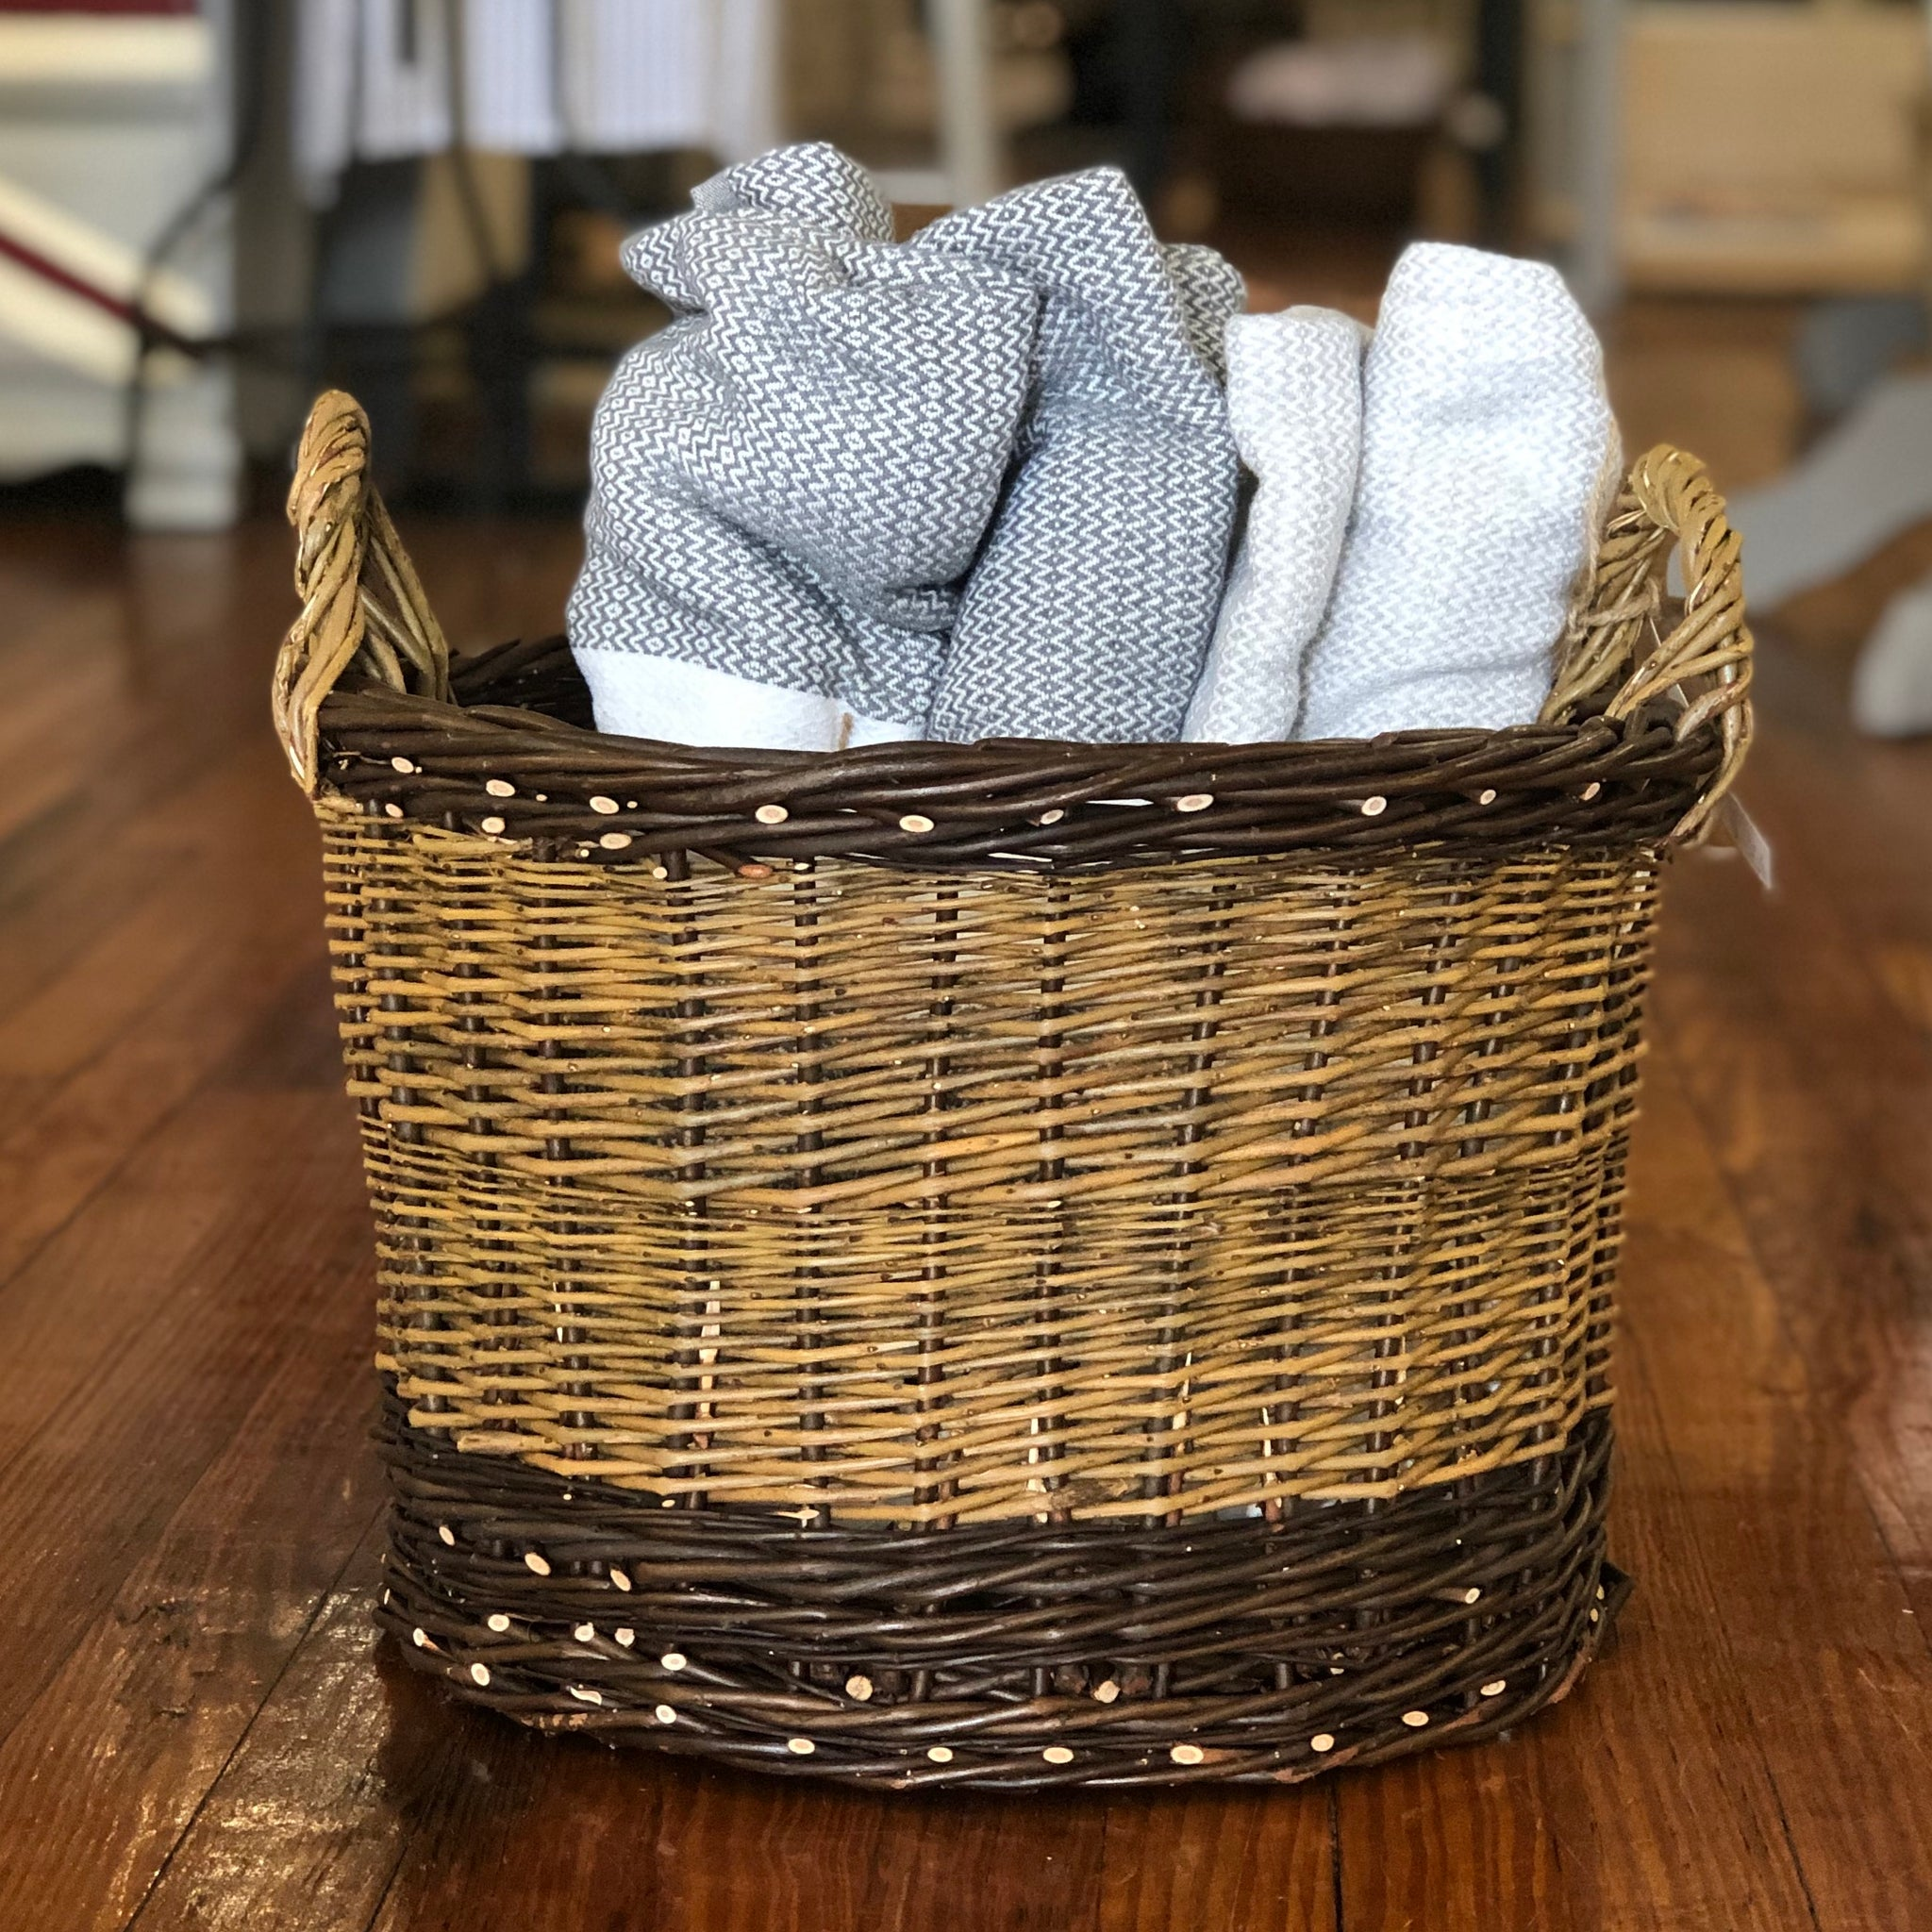 A small willow woven laundry basket is pictured. It is made of a light willow and has a dark willow border on both the top and bottom. The handles on either end of the basket are both made of light willow. The basket holds two folded gray blankets.